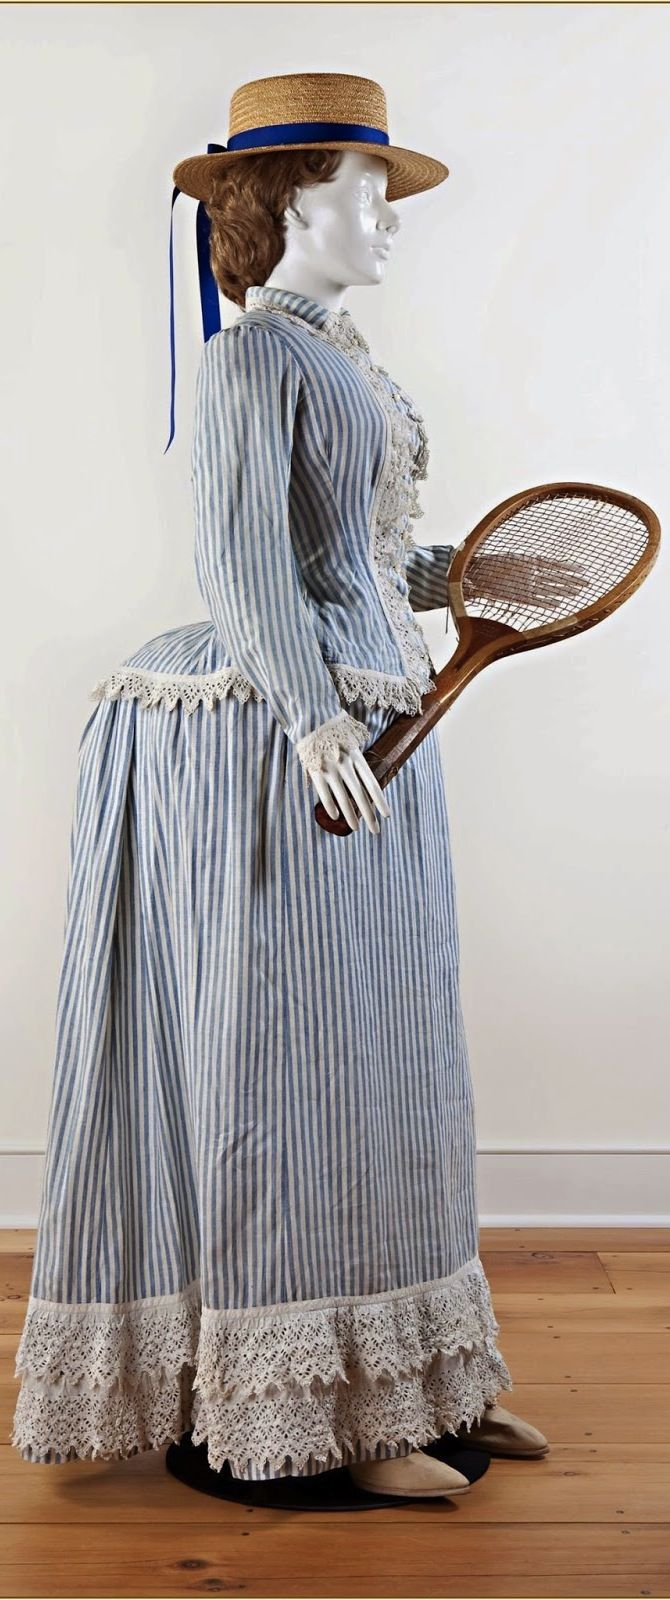 Tennis dress, c. 1885. Two piece blue and white striped cotton, Broderie Anglaise trim on jacket and hemline. Darien Historical Society.